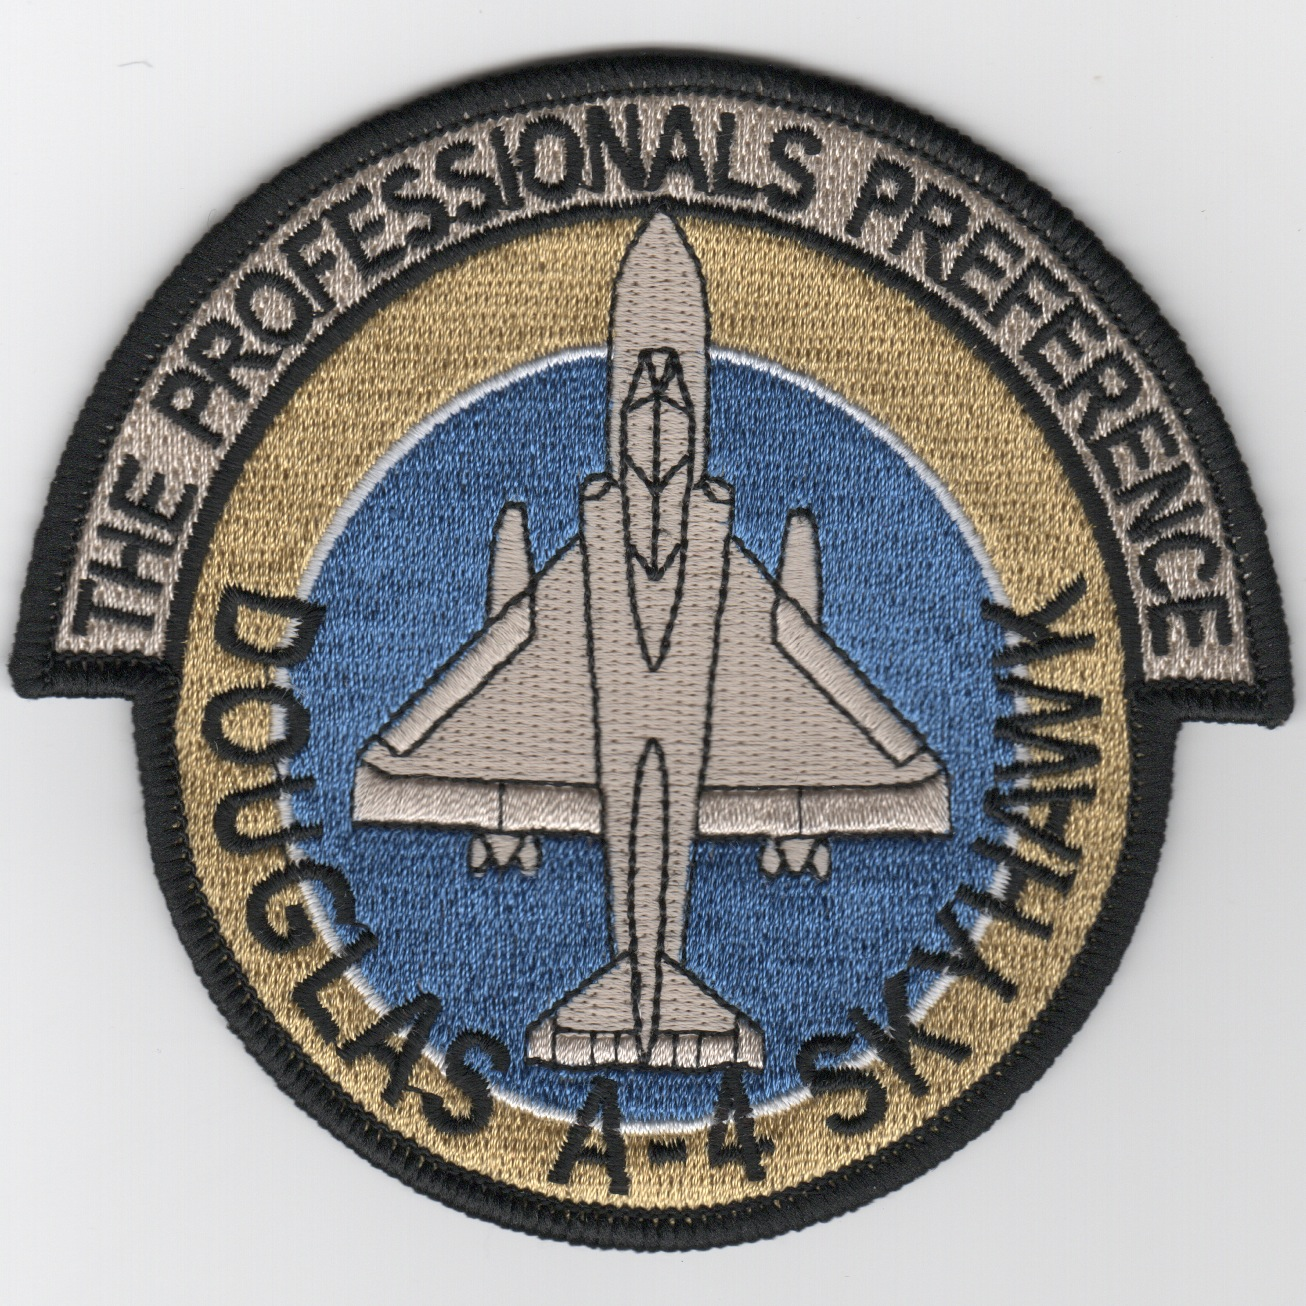 A-4 'Professionals Preference' Patch